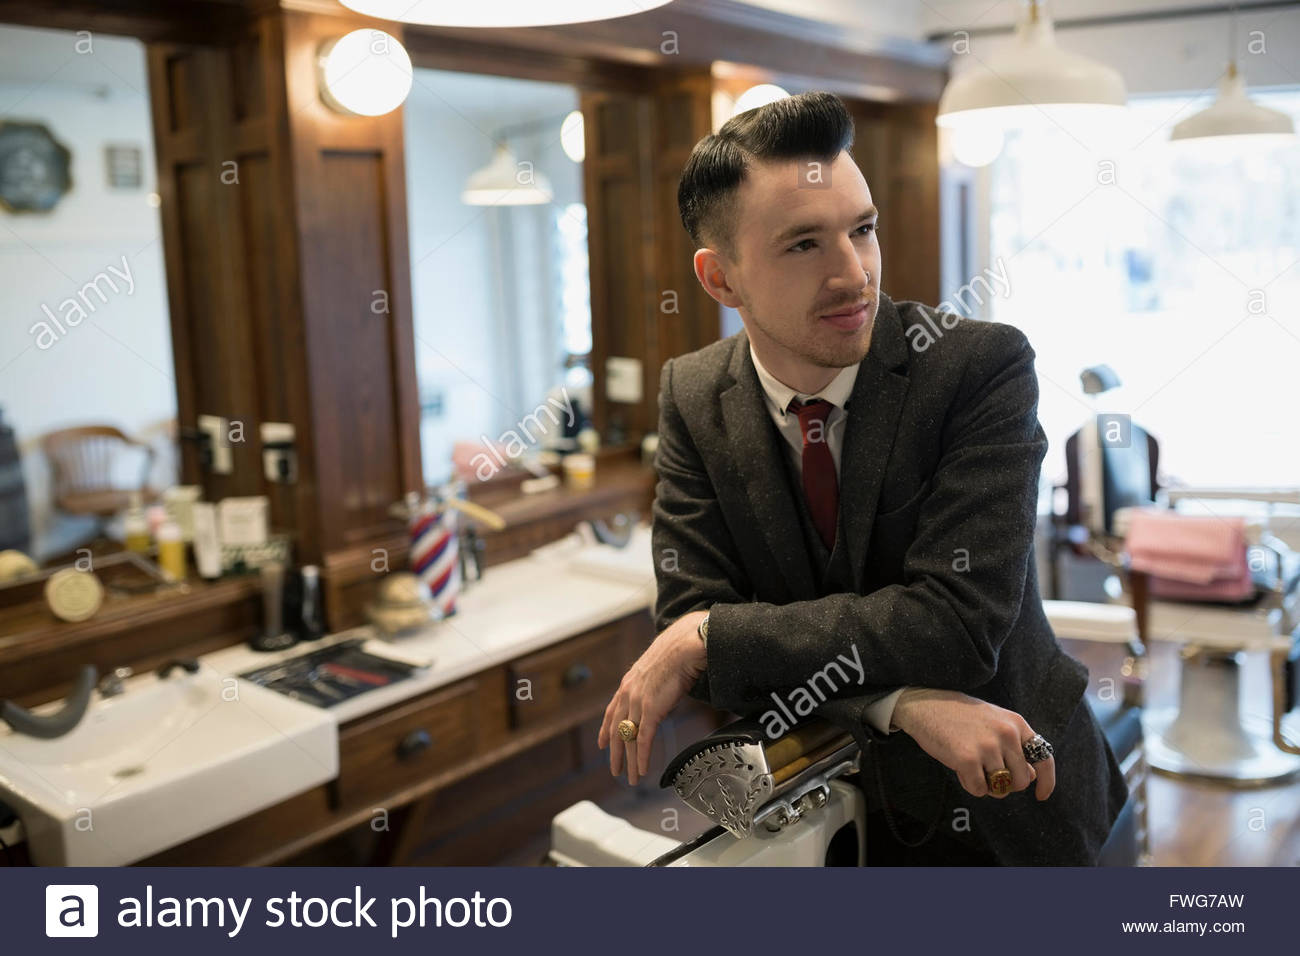 Confident barber wearing suit in barber shop - Stock Image